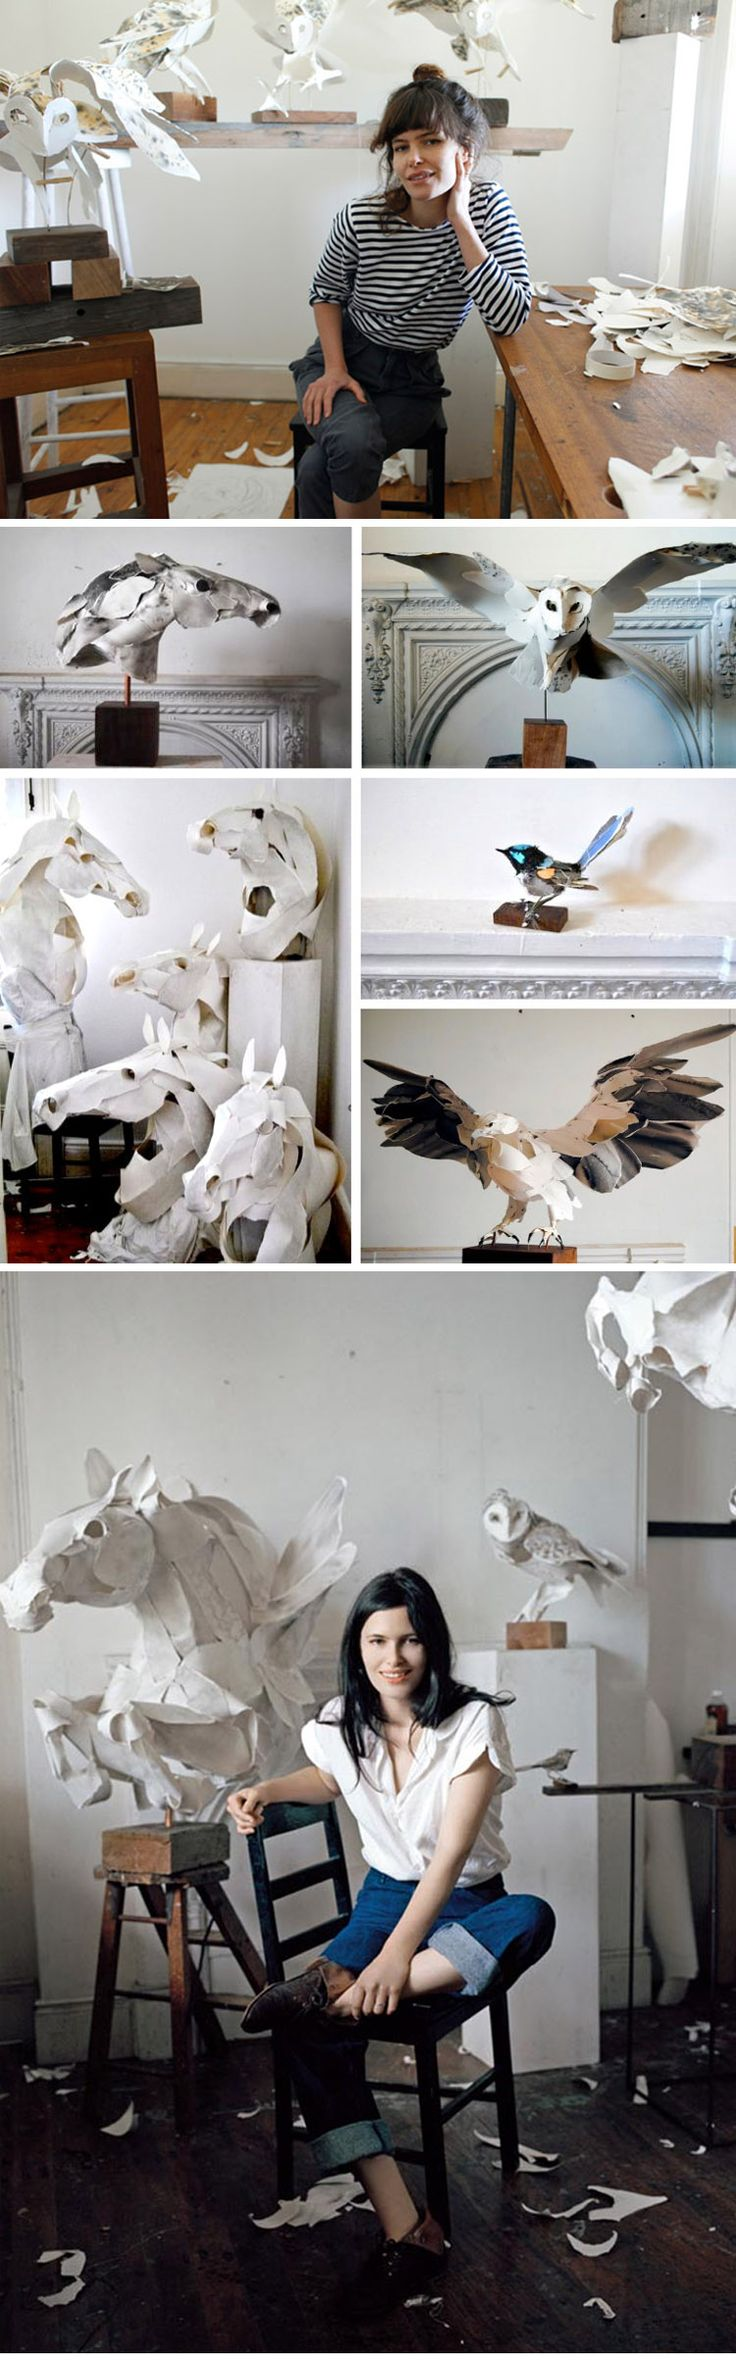 Paper Sculptures Anna-Wili Highfield and some of her beautiful creations #paper